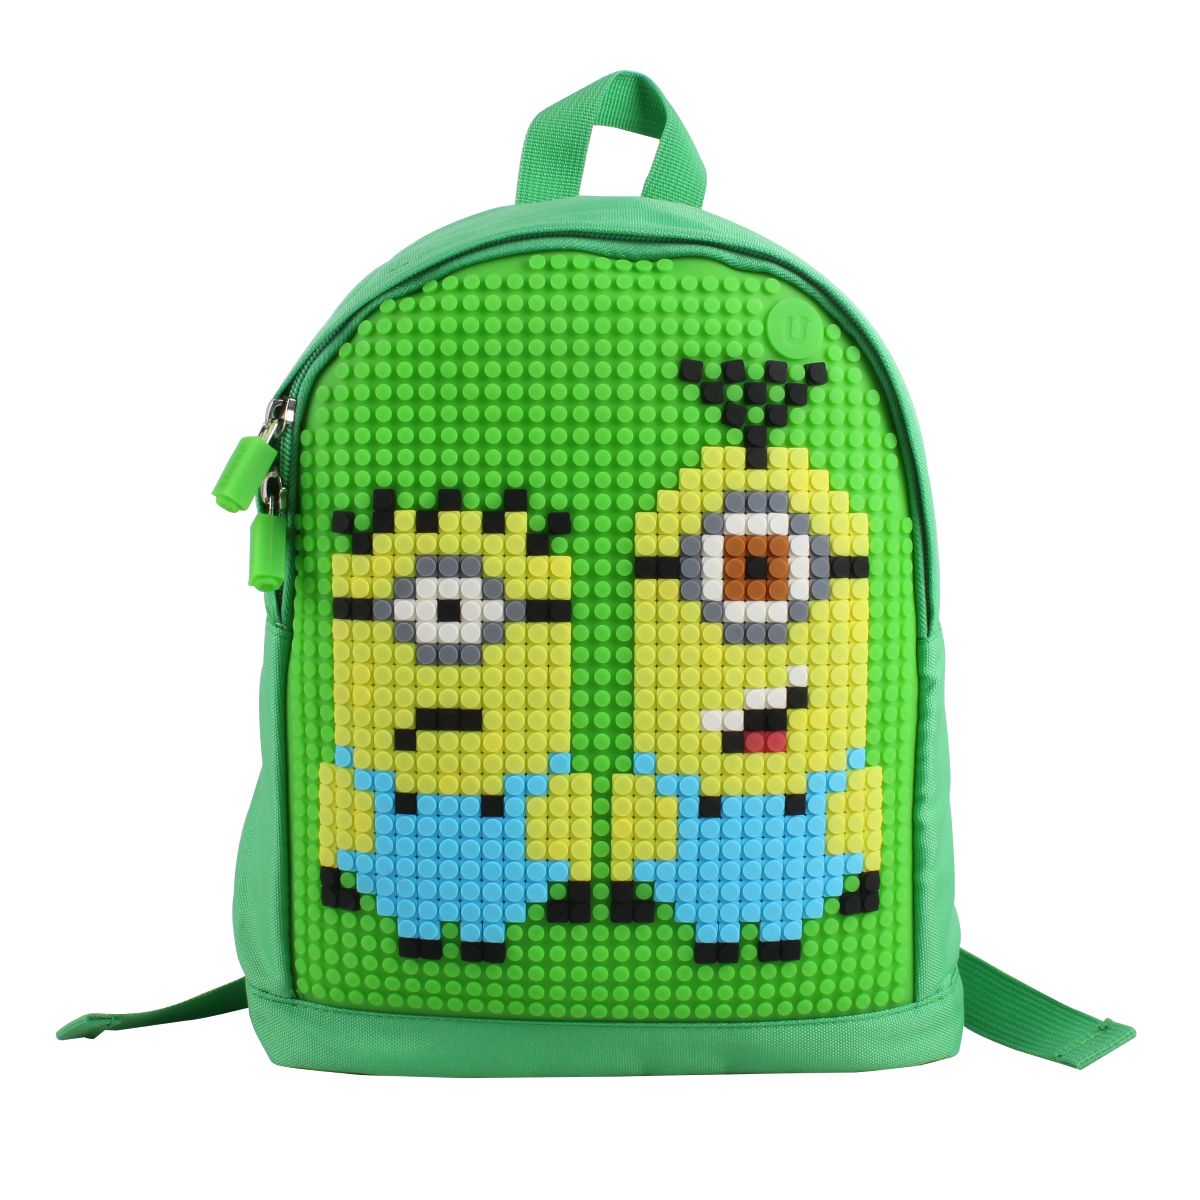 UPixel Pixel Kids Backpack  - Green/Yellow